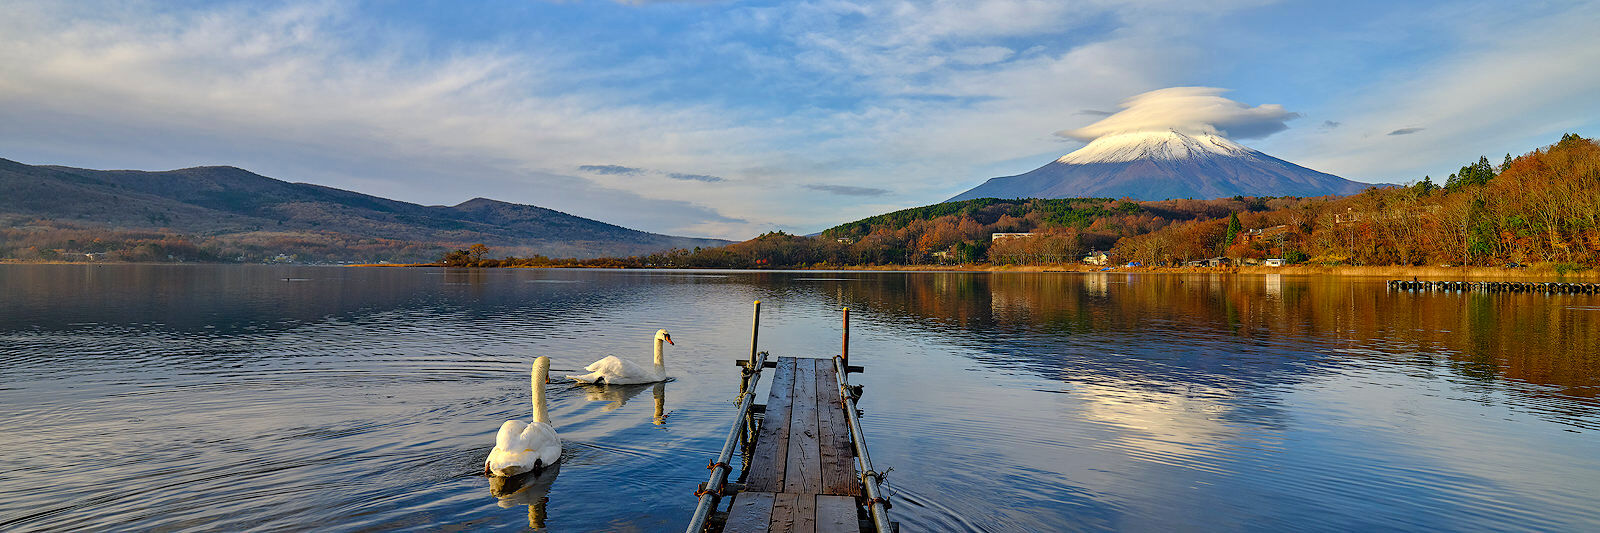 panoramic scene of Lake Yamanaka with several swans at sunrise and Mount Fuji rising in the background with lenticular clouds around it in Japan